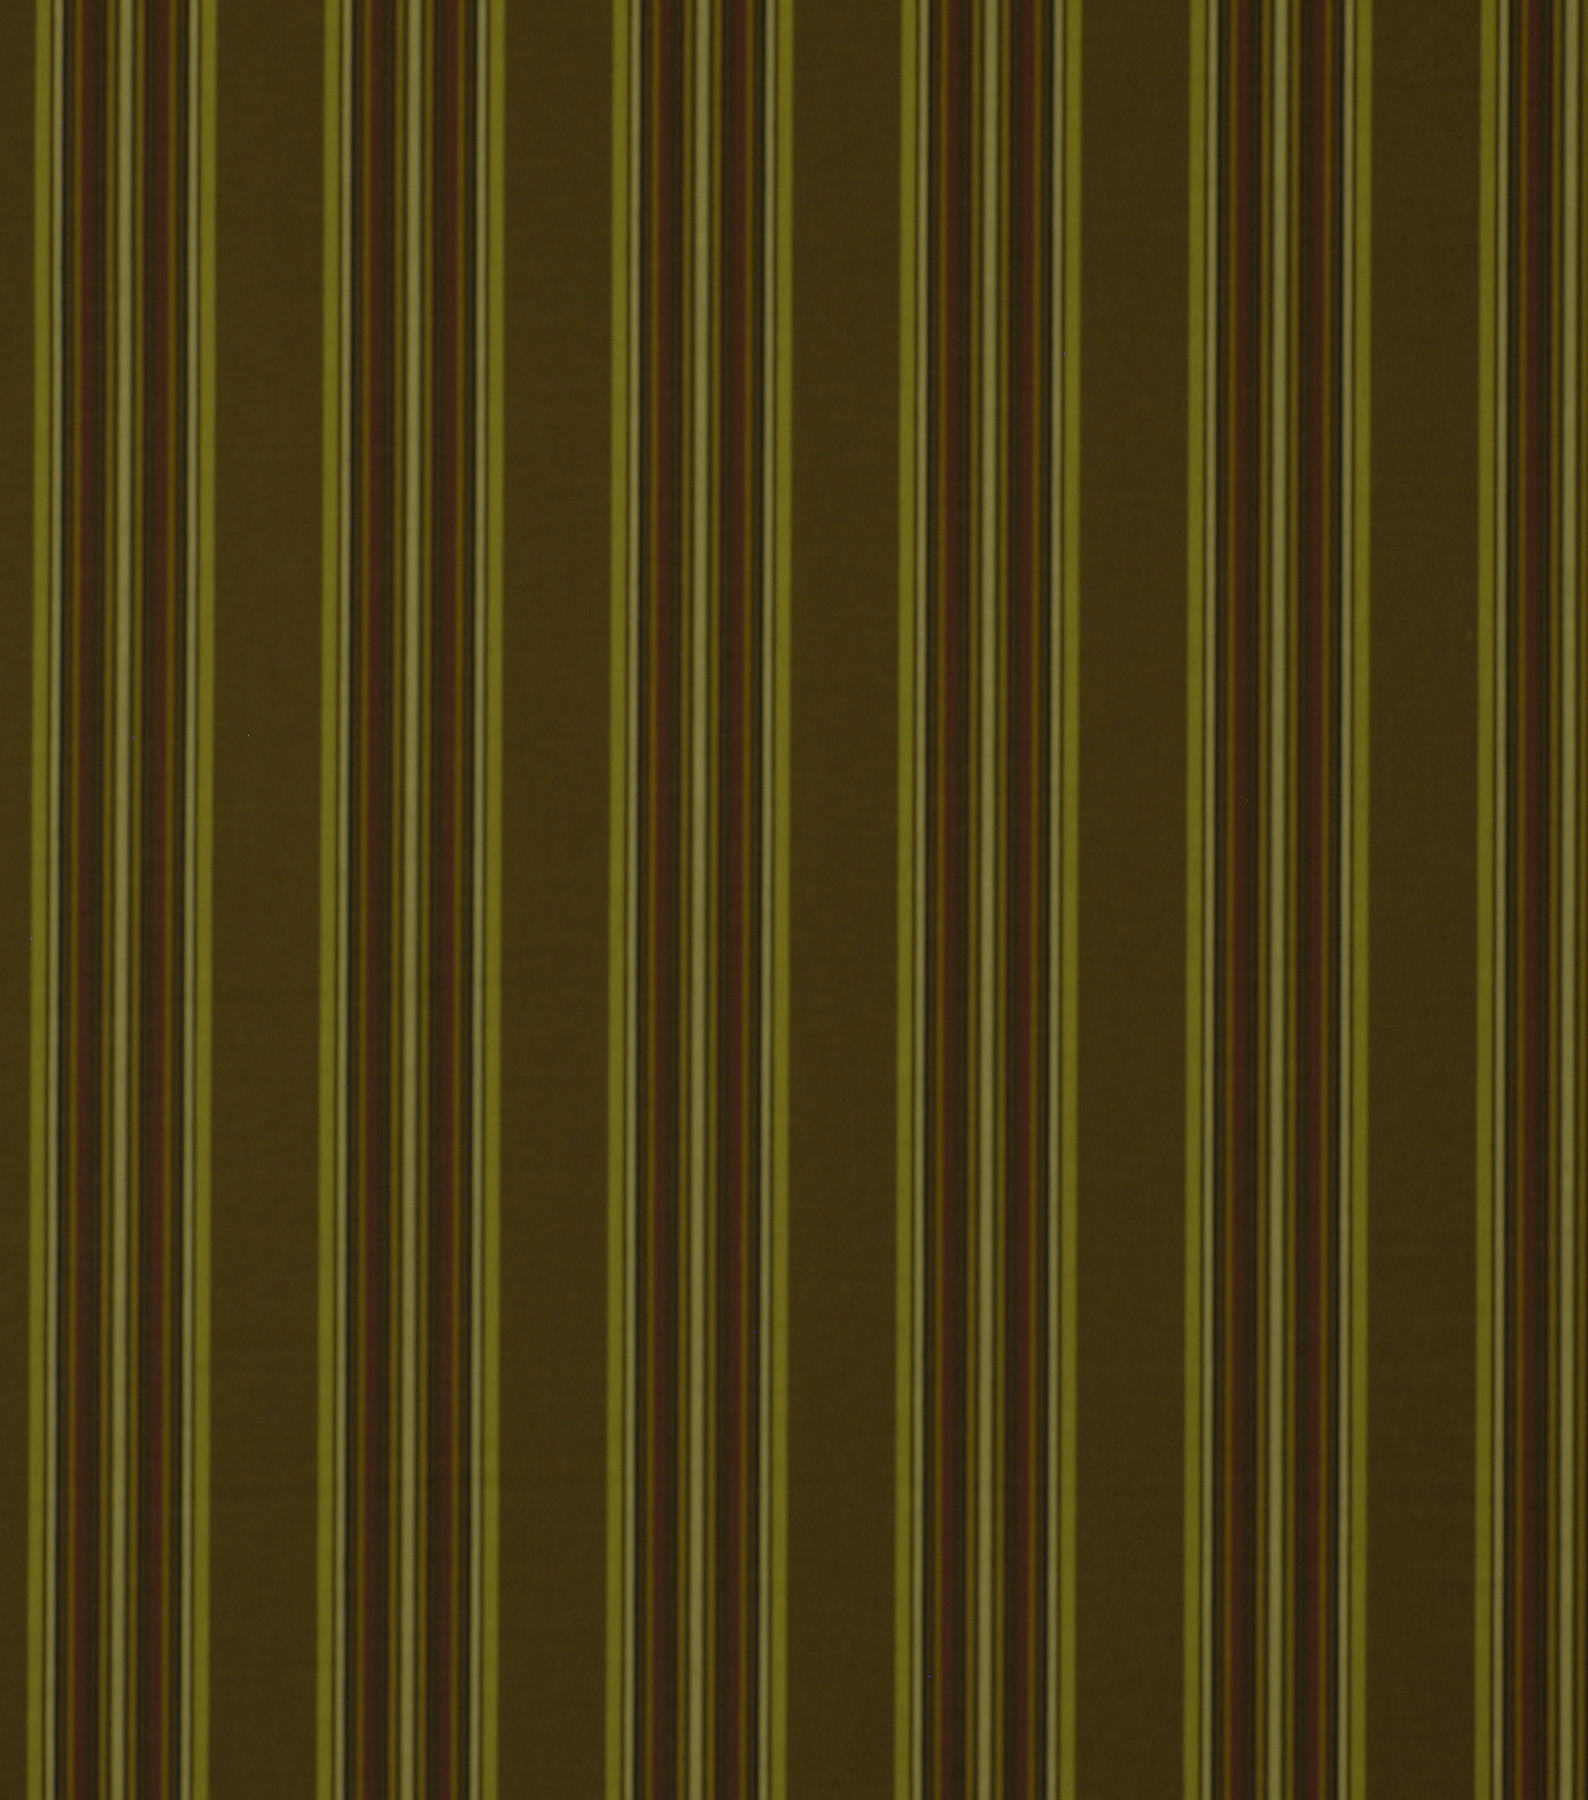 Home Decor 8\u0022x8\u0022 Fabric Swatch-Solid-Robert Allen Villa Stripe Chocolate